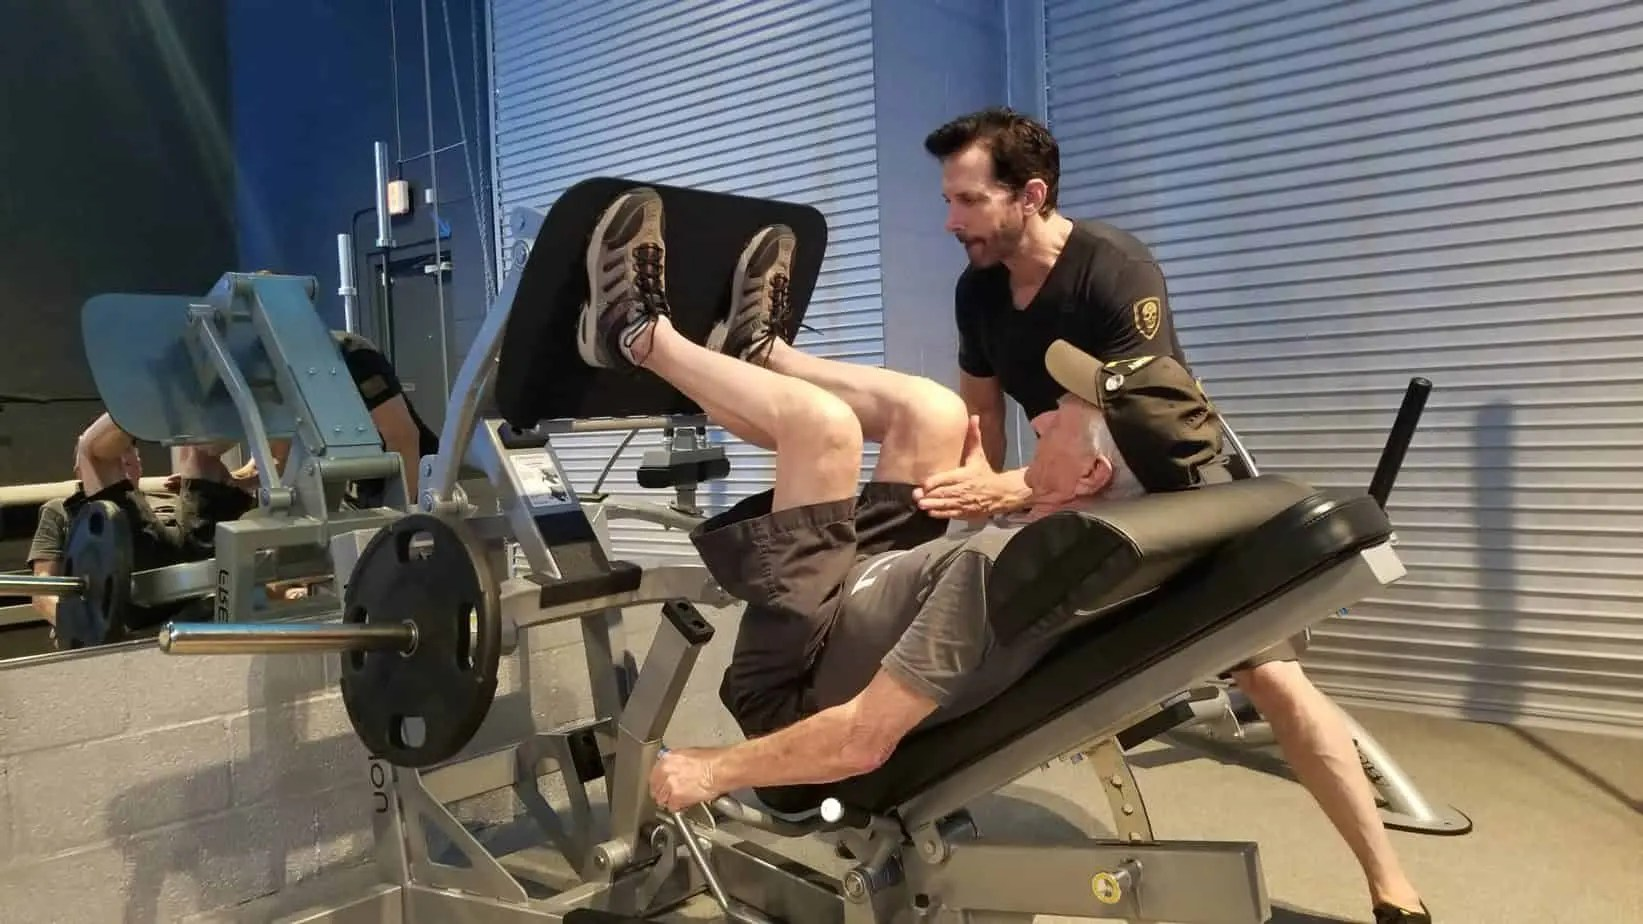 Co-founder Cary Reichbach providing personalized one-on-one personal training with a 91-year-old combat veteran in Boca Raton, Florida.